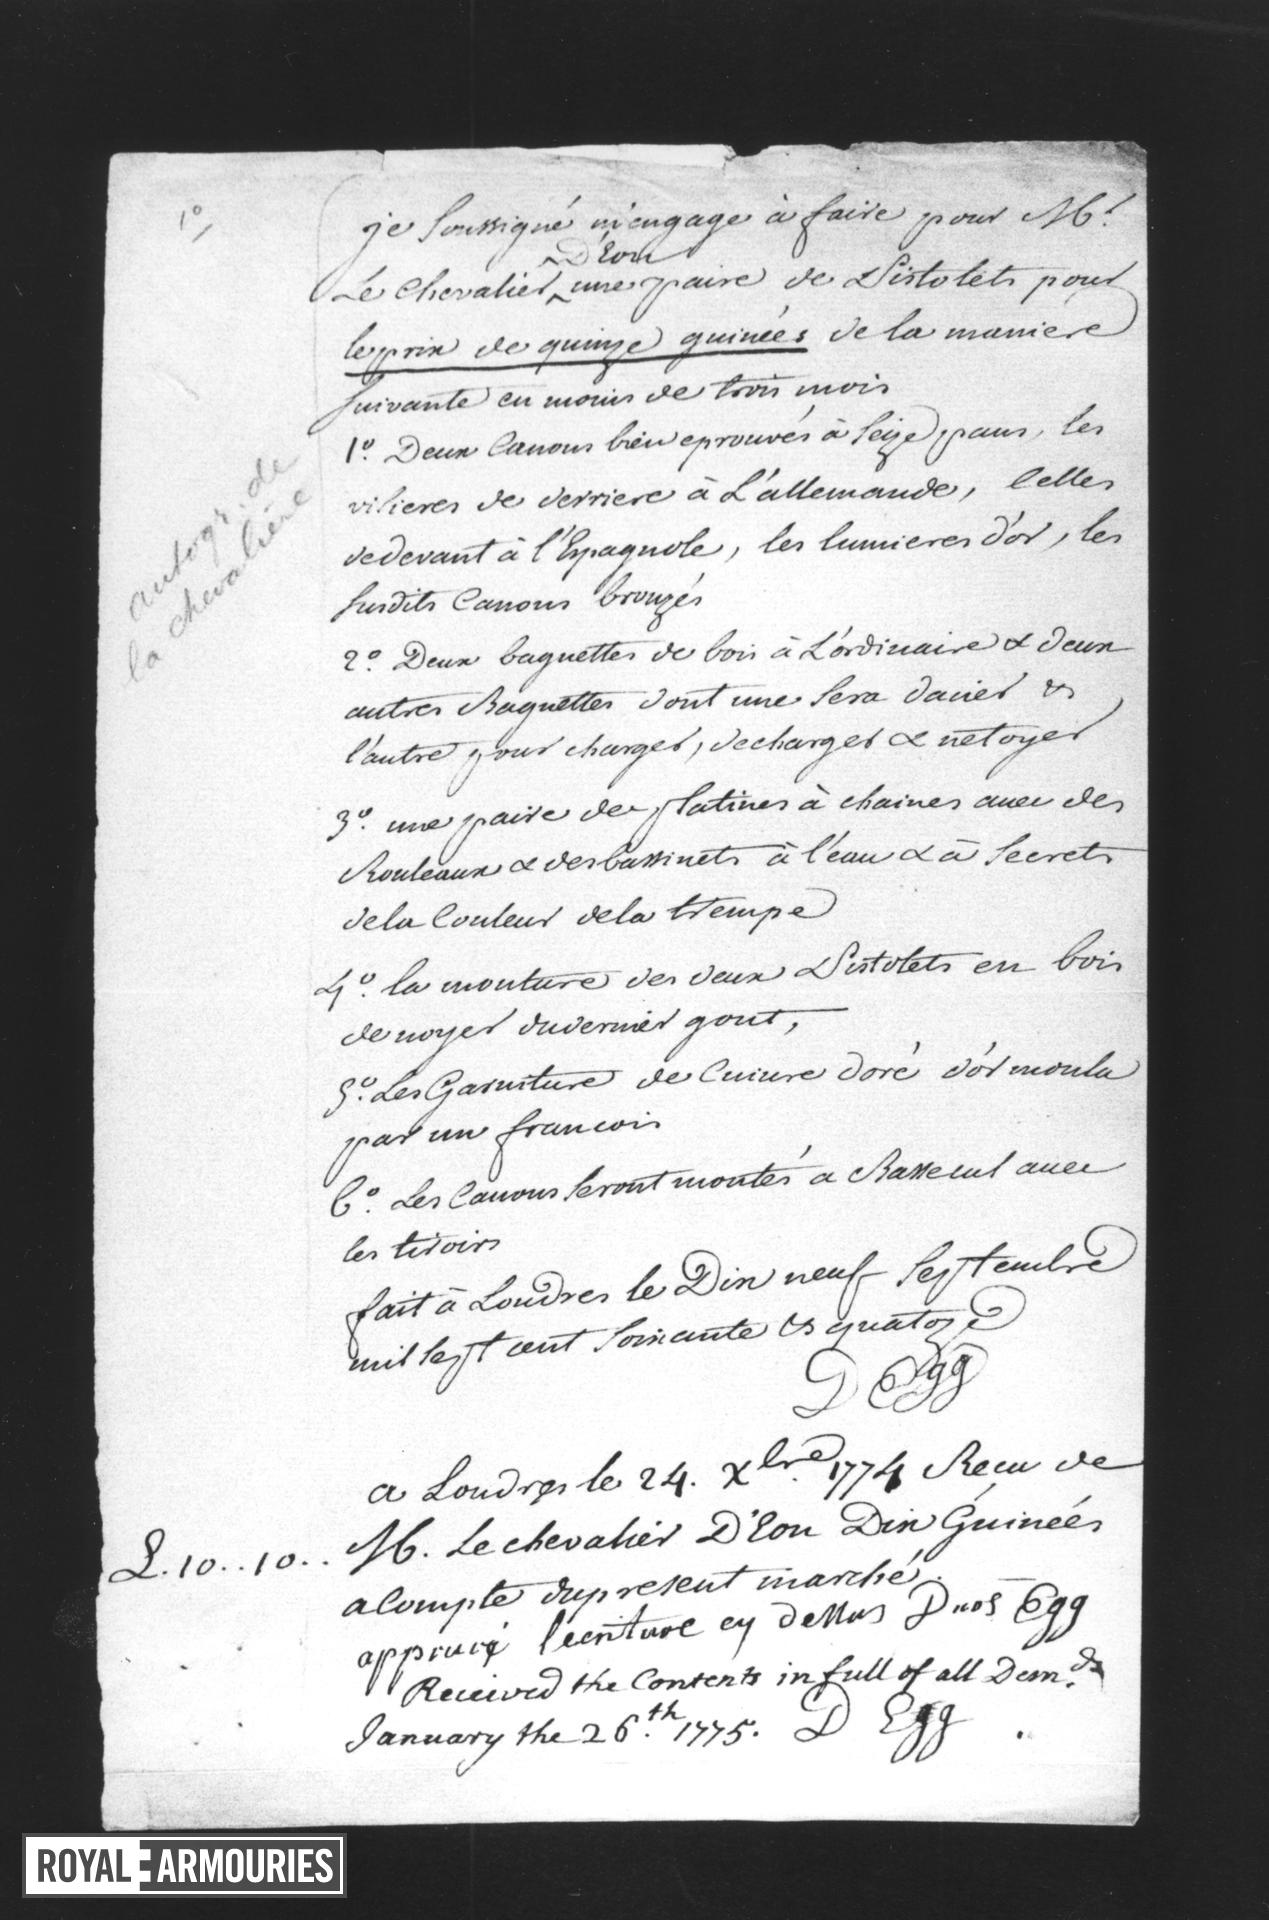 Contract, signed D. Egg, and dated 24 December 1774, undertaking to make a pair of pistols for the Chevalier d'Eon, for a price of 15 guineas, giving a detailed specification